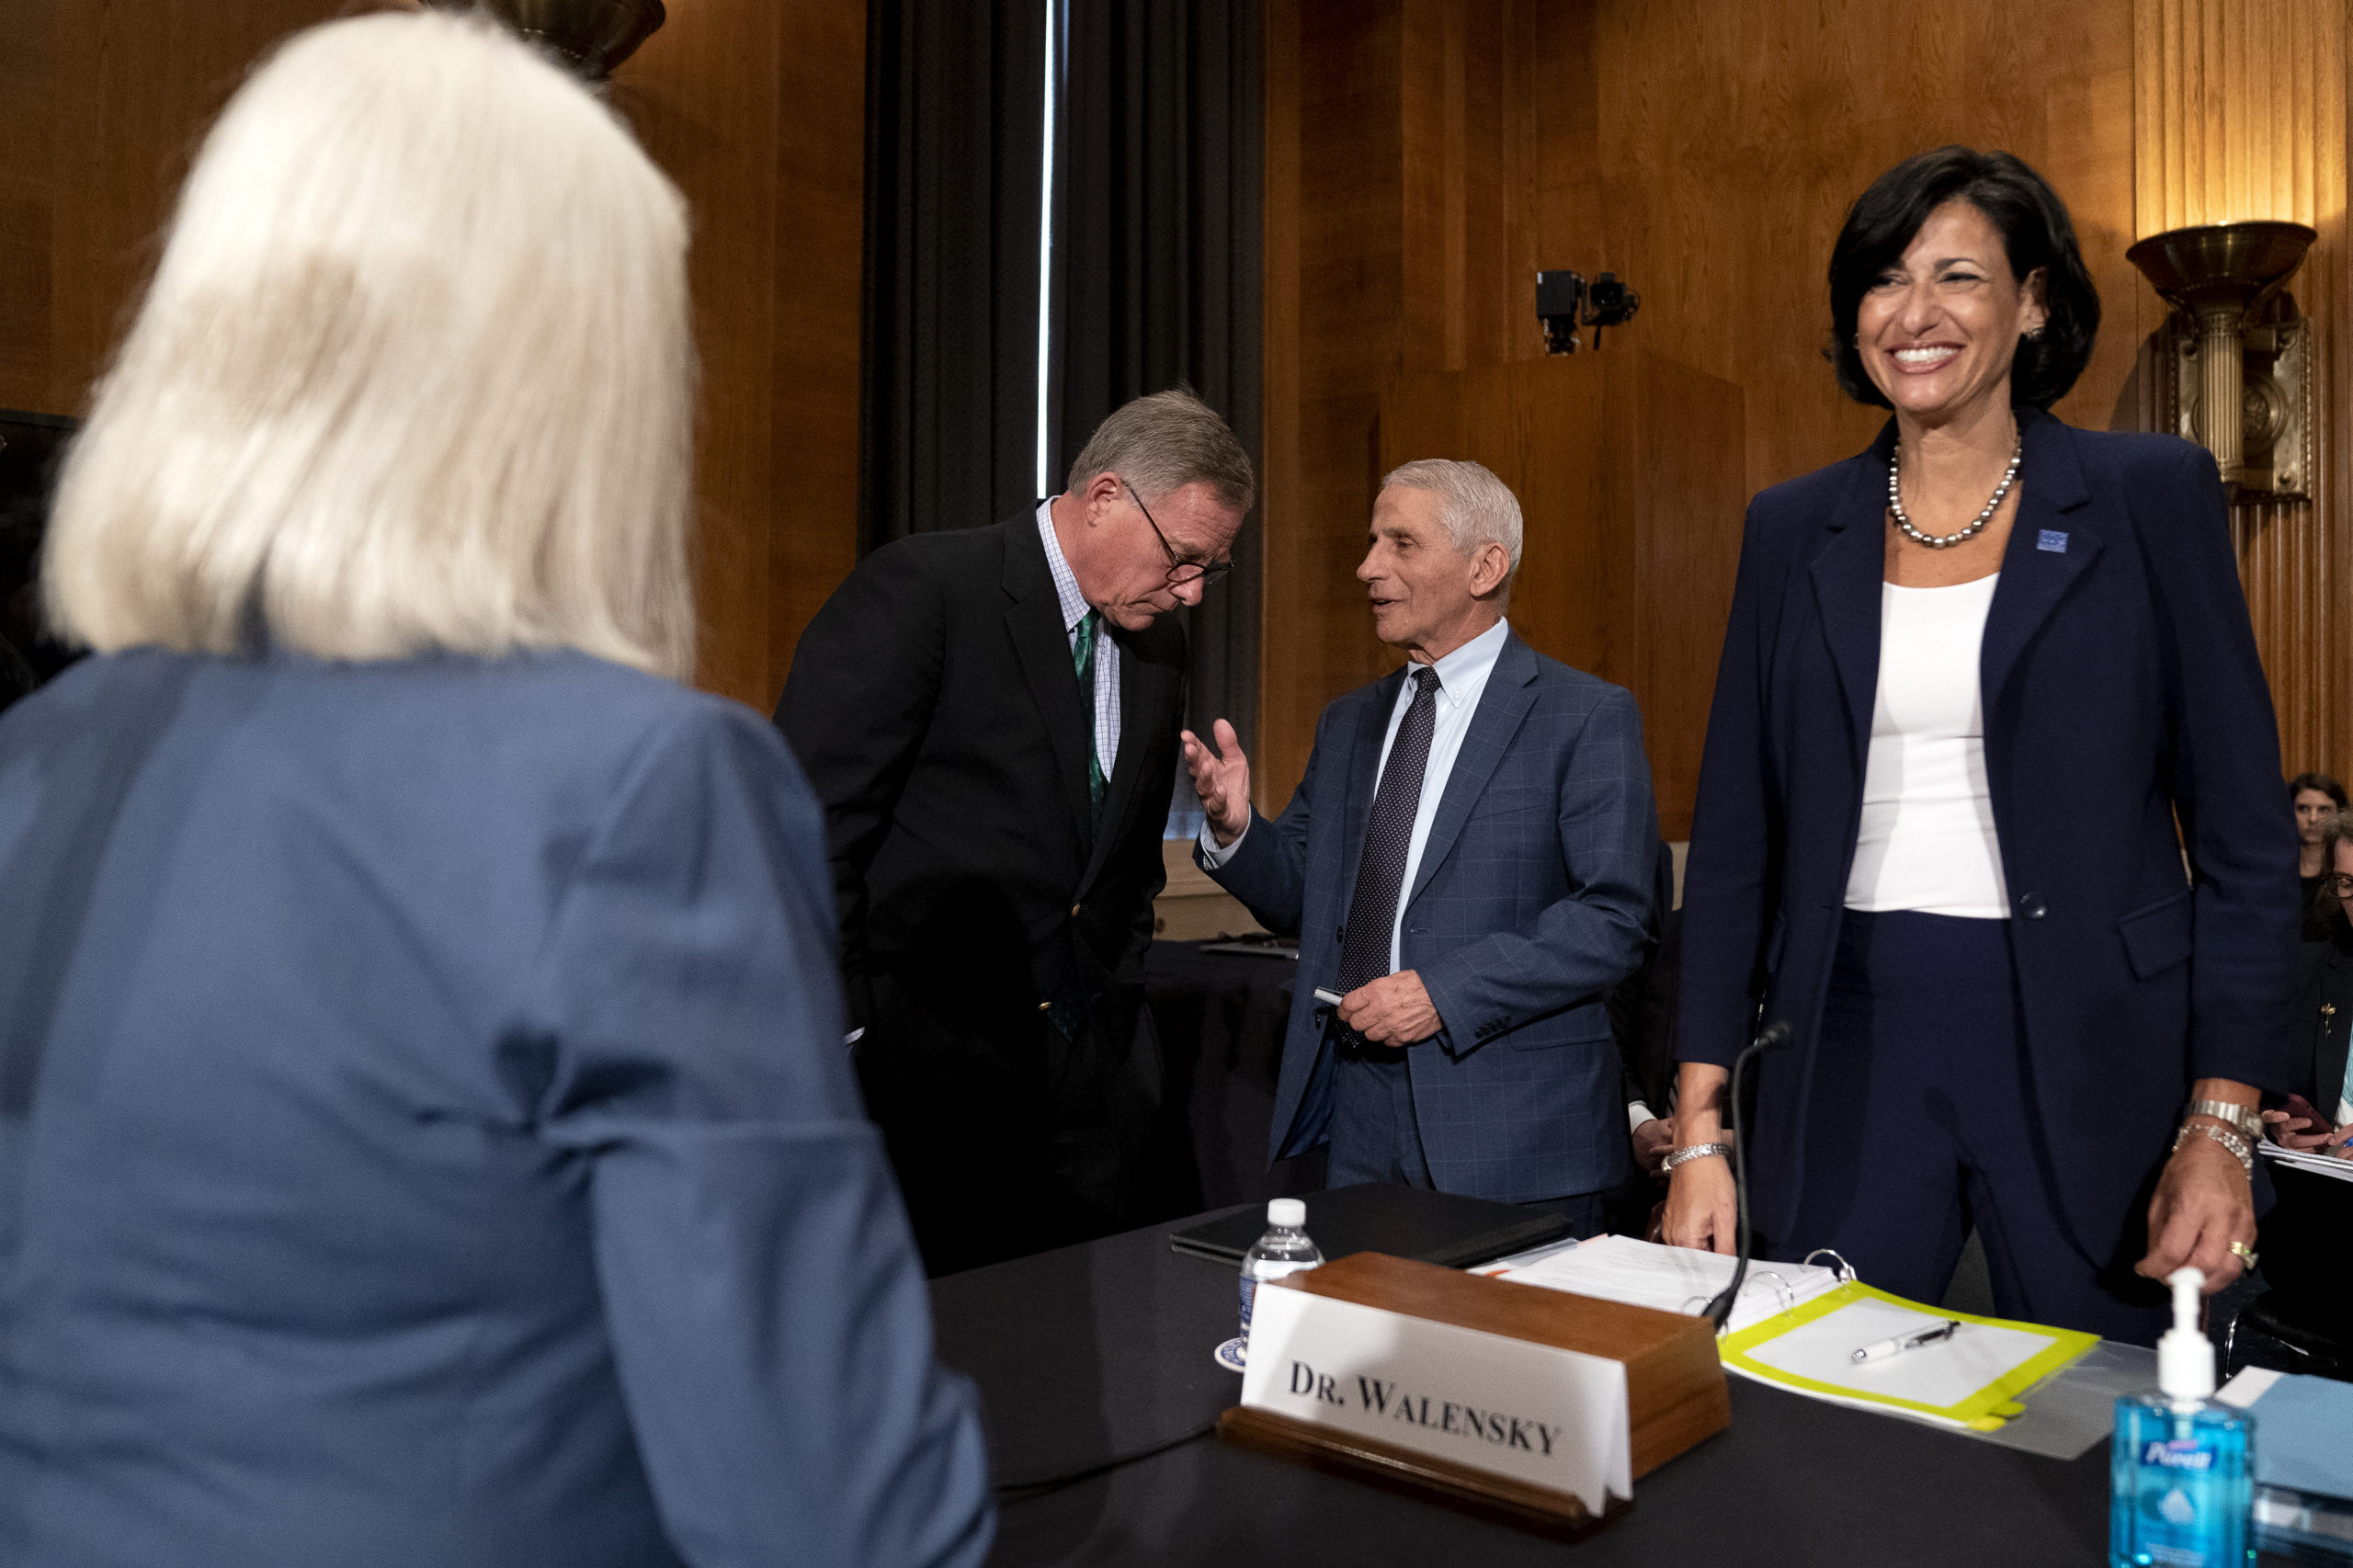 Senators meet with Dr. Anthony Fauci and CDC Director Rochelle Walensky before a hearing on July 20. (Stefani Reynolds/Pool/Getty Images)